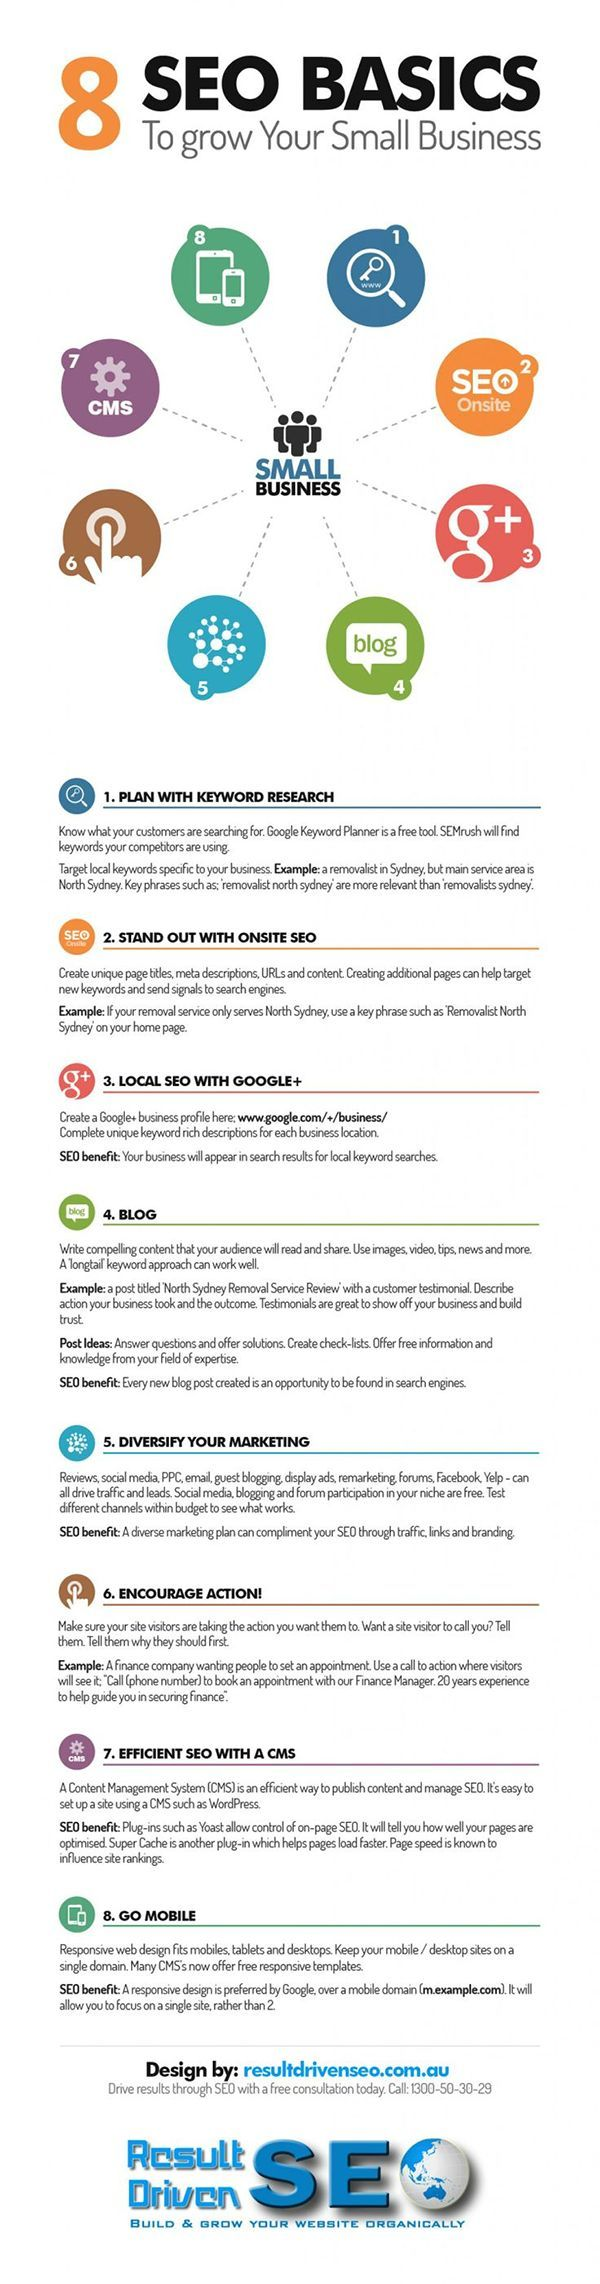 8 #SEO Basics Every New Website Owner Should Know #searchengineoptimization #infographic